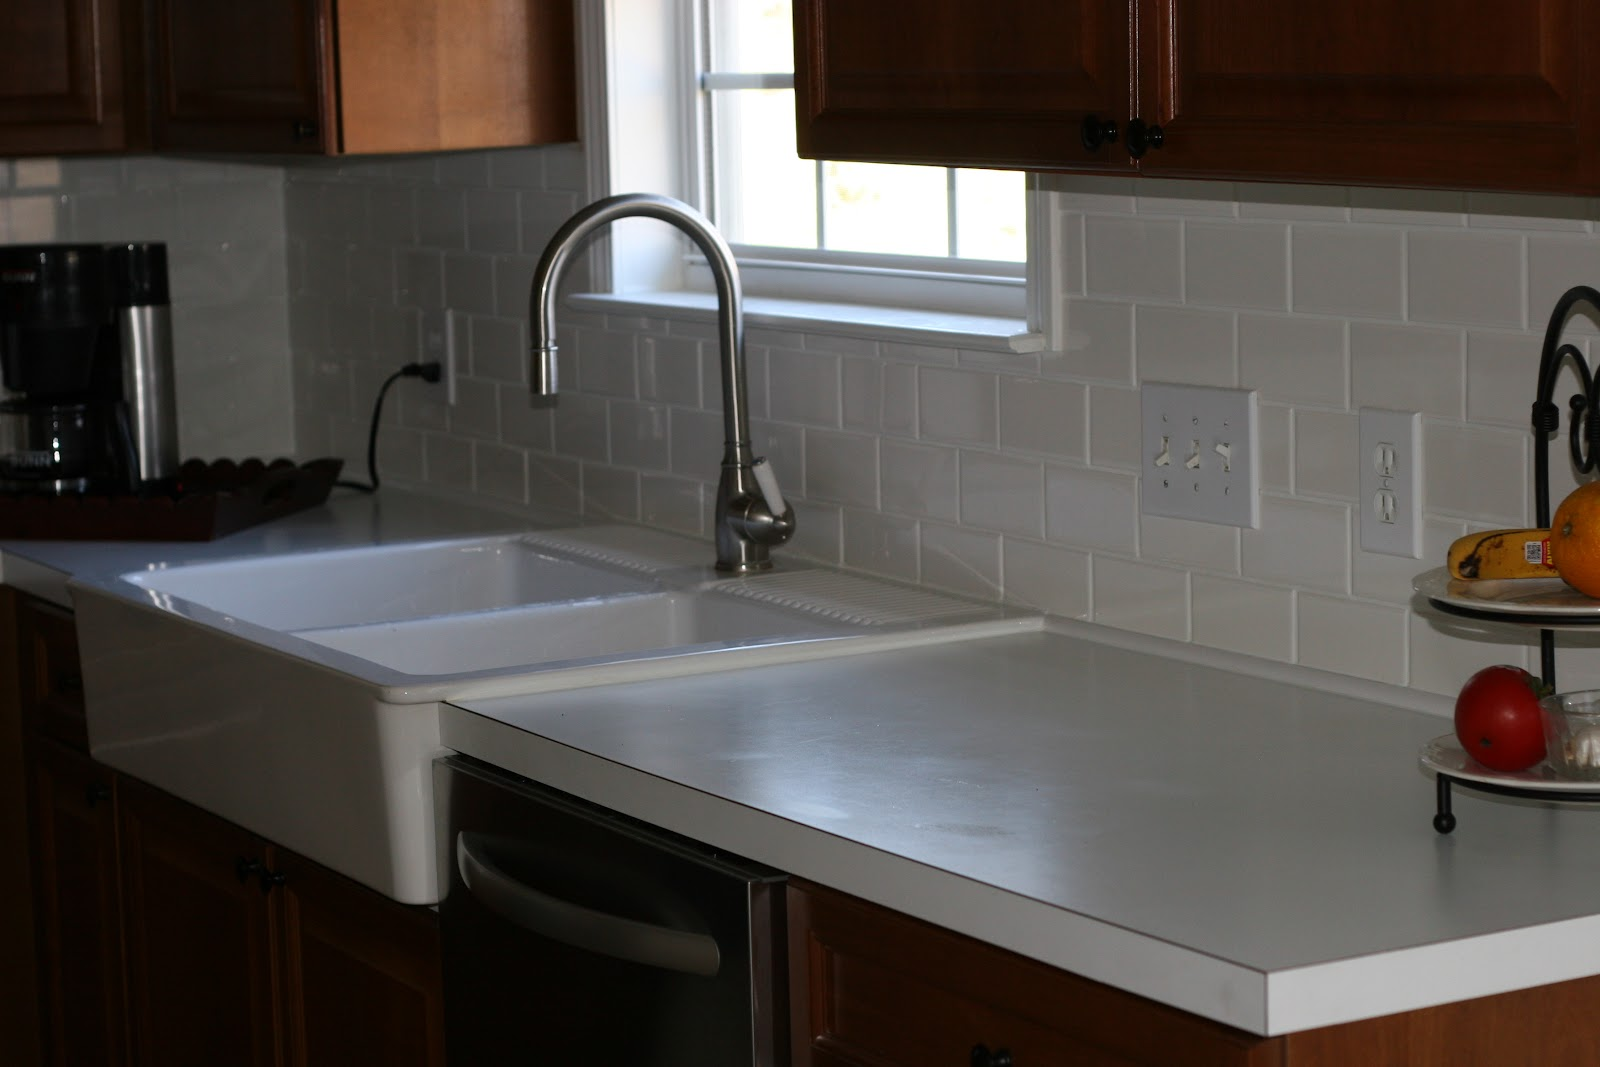 Kitchen Sink With Backsplash Under Mount Sinks What Makes Me Happy New And